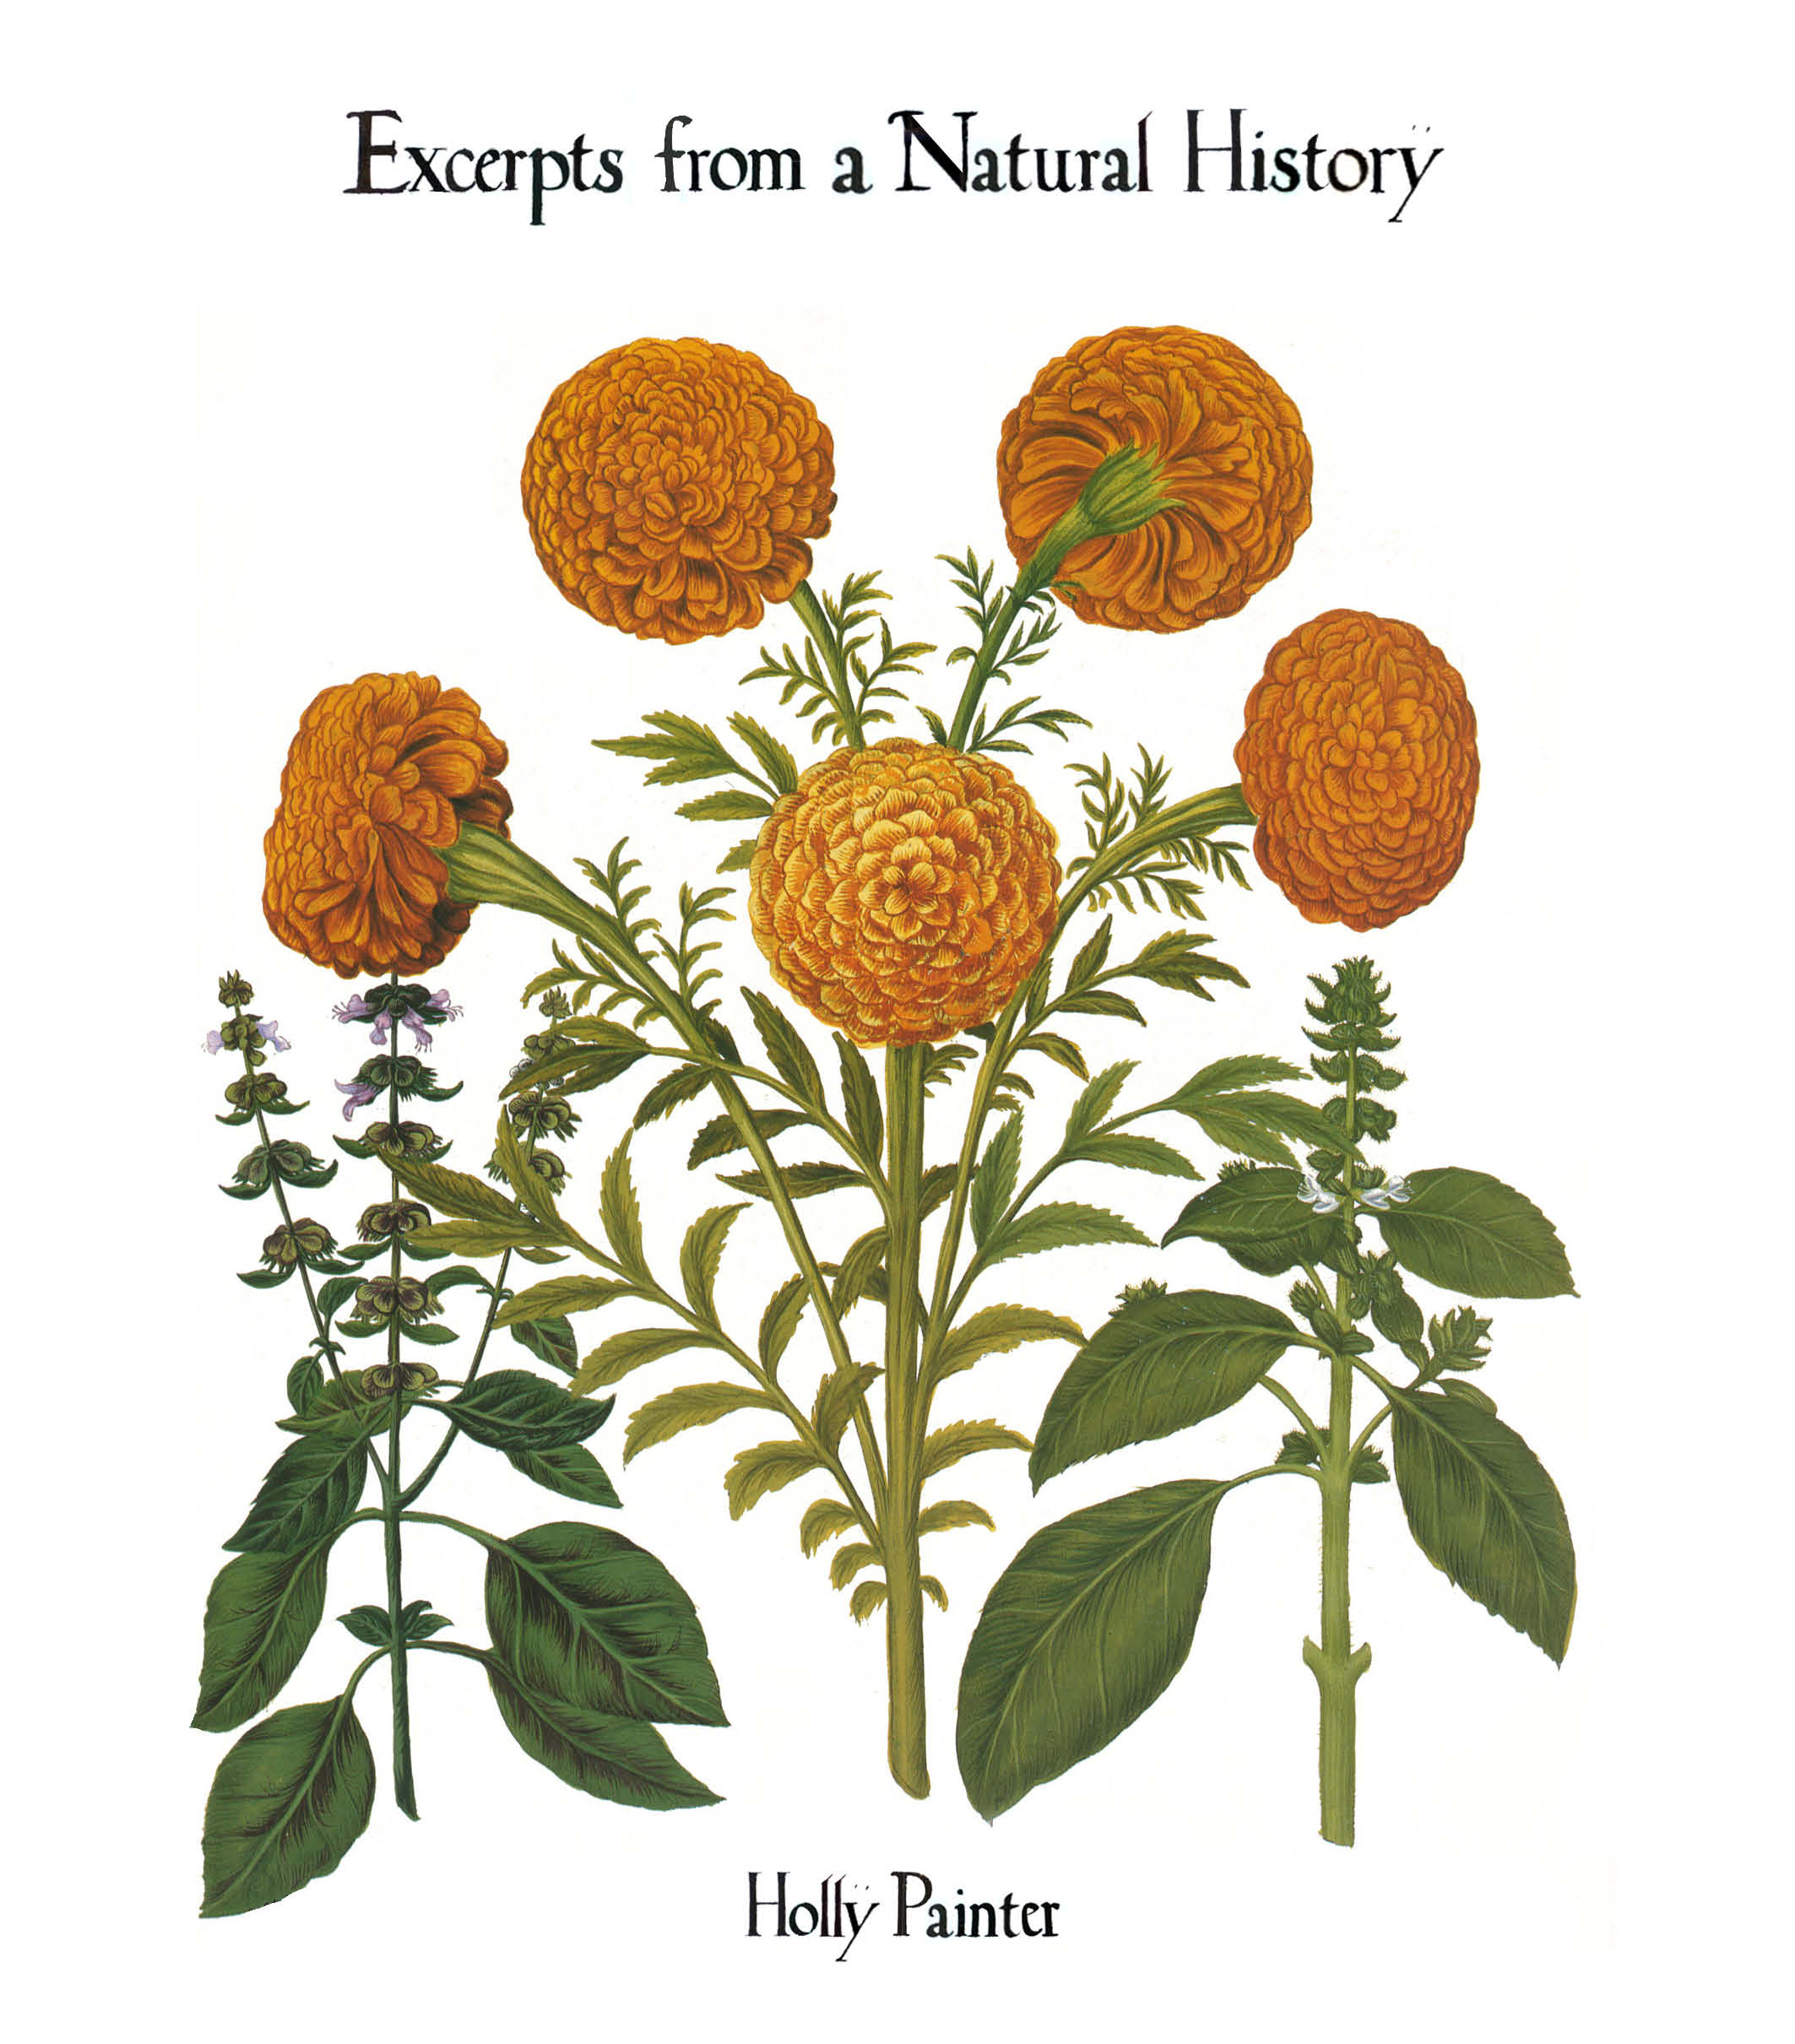 cover of Excerpts from a Natural History by Holly Painter